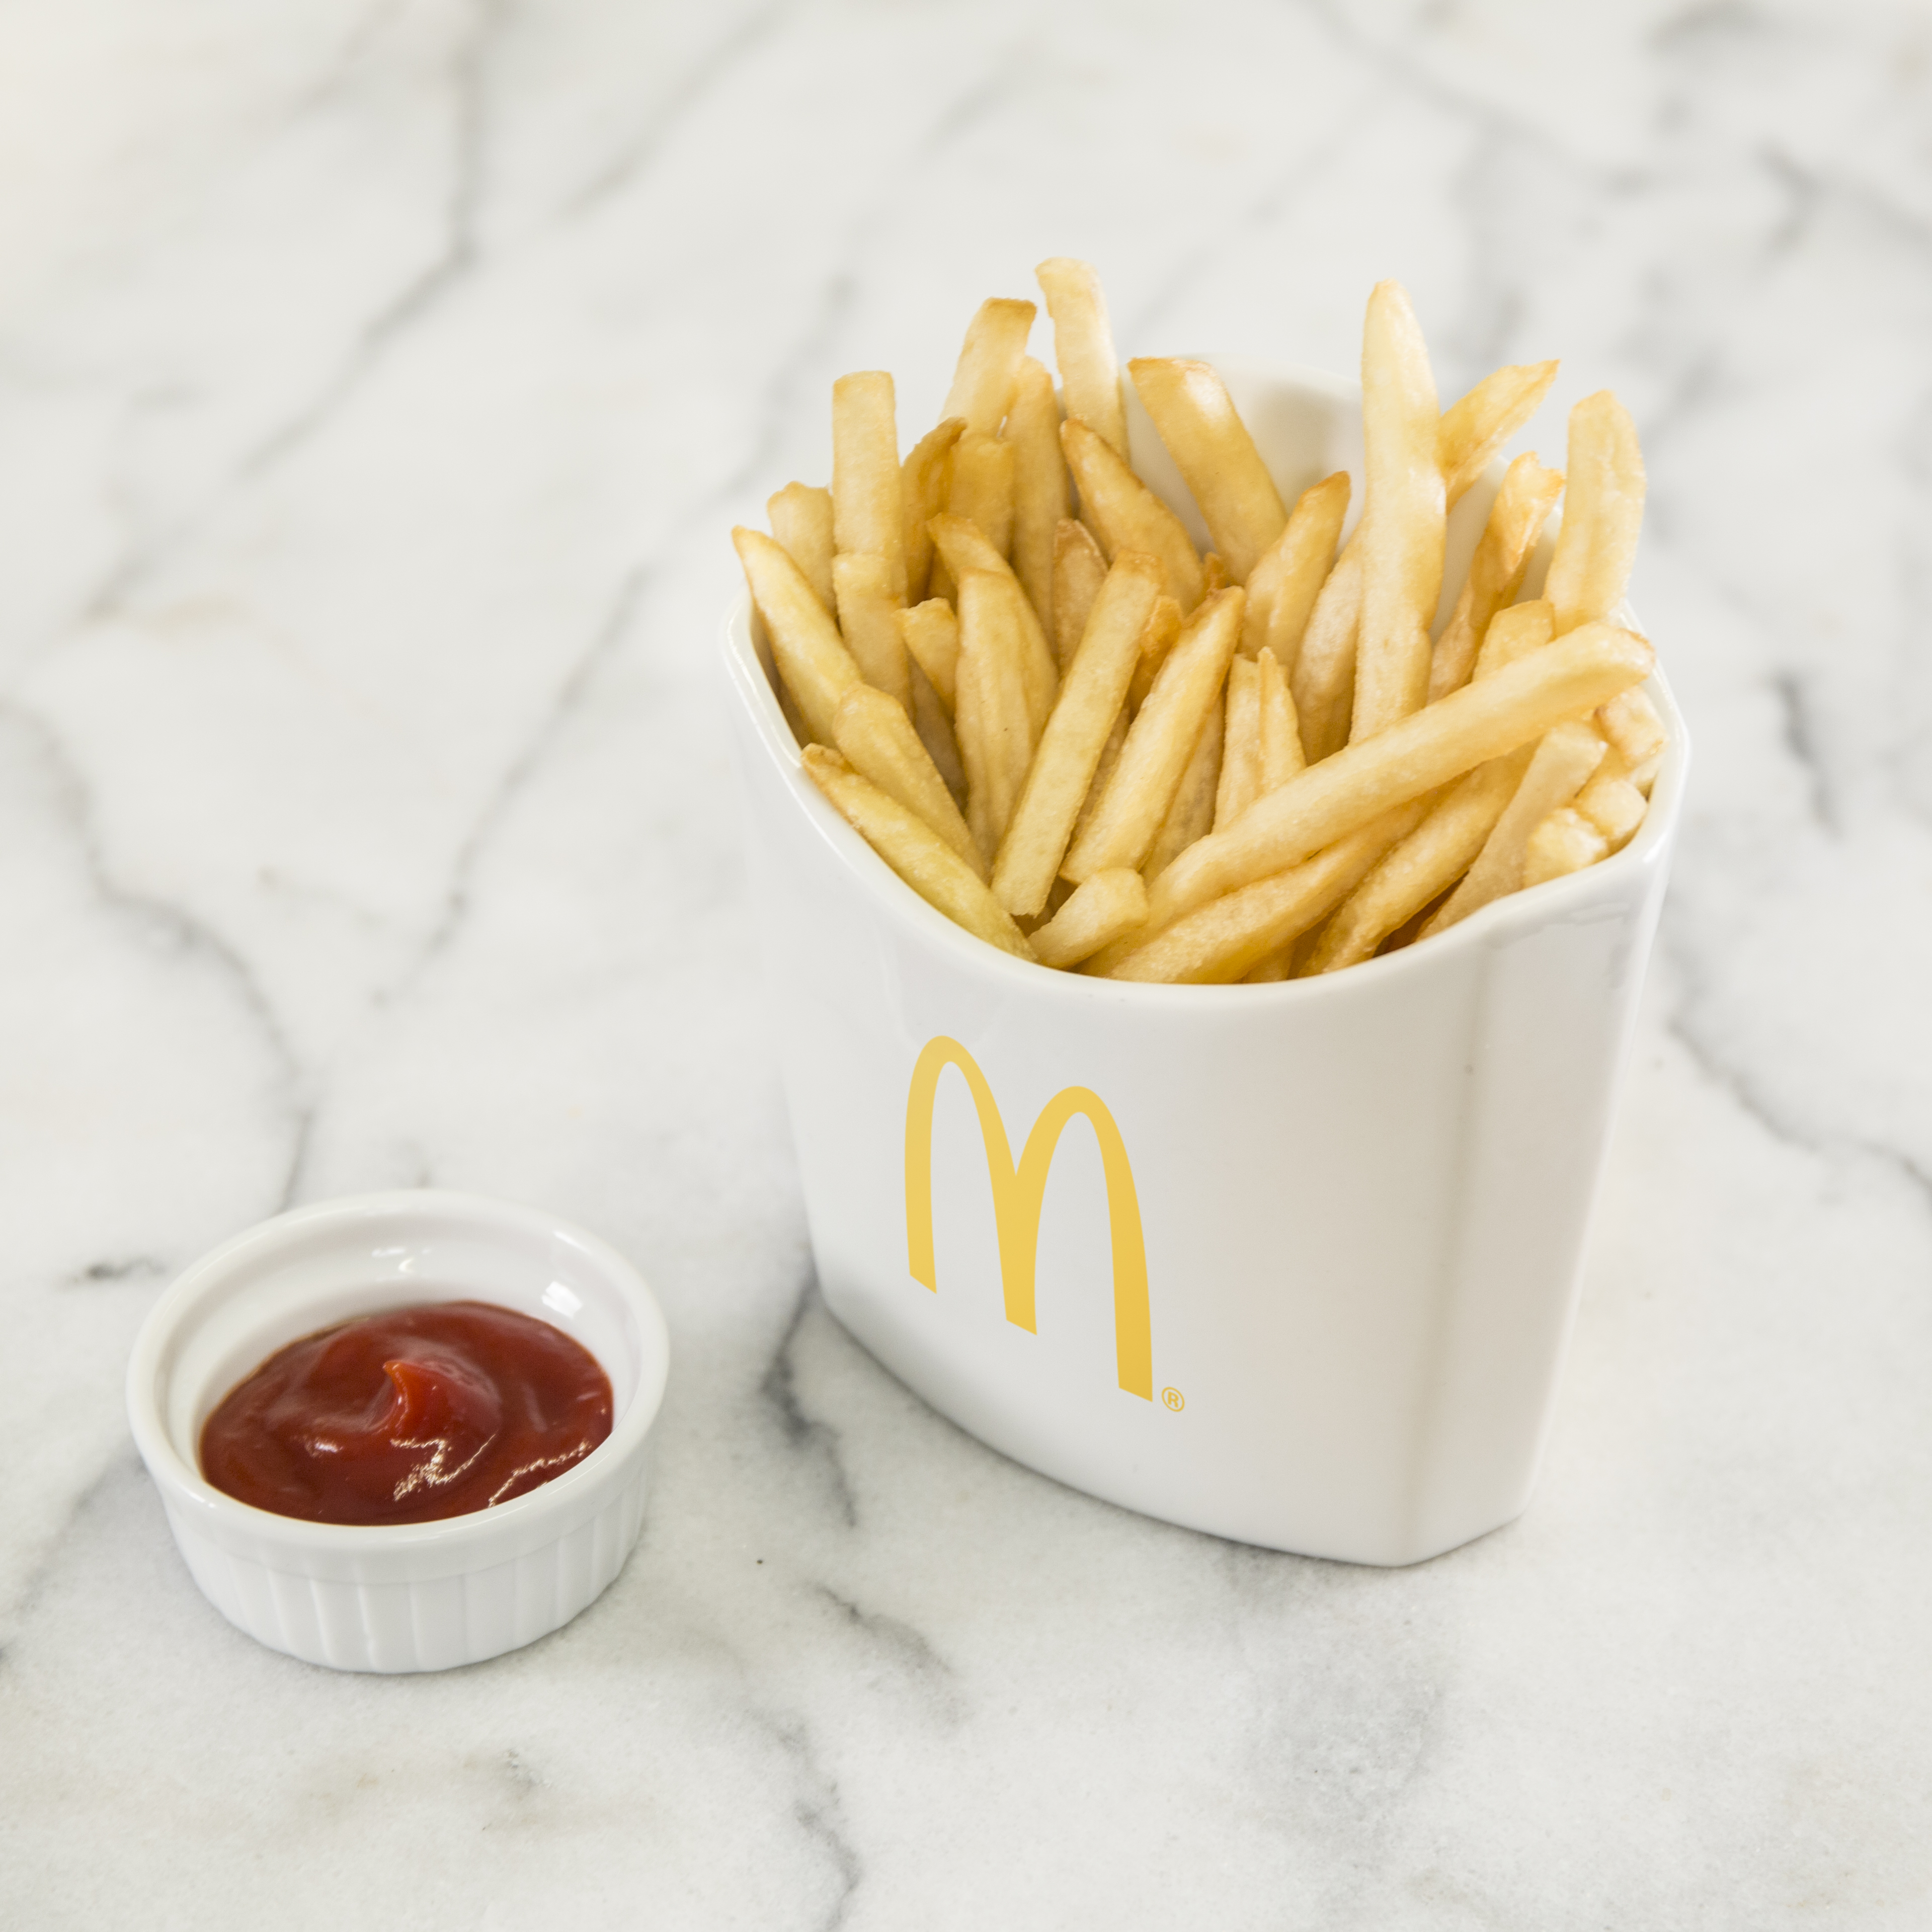 Fries_inWhiteBox_M_v01